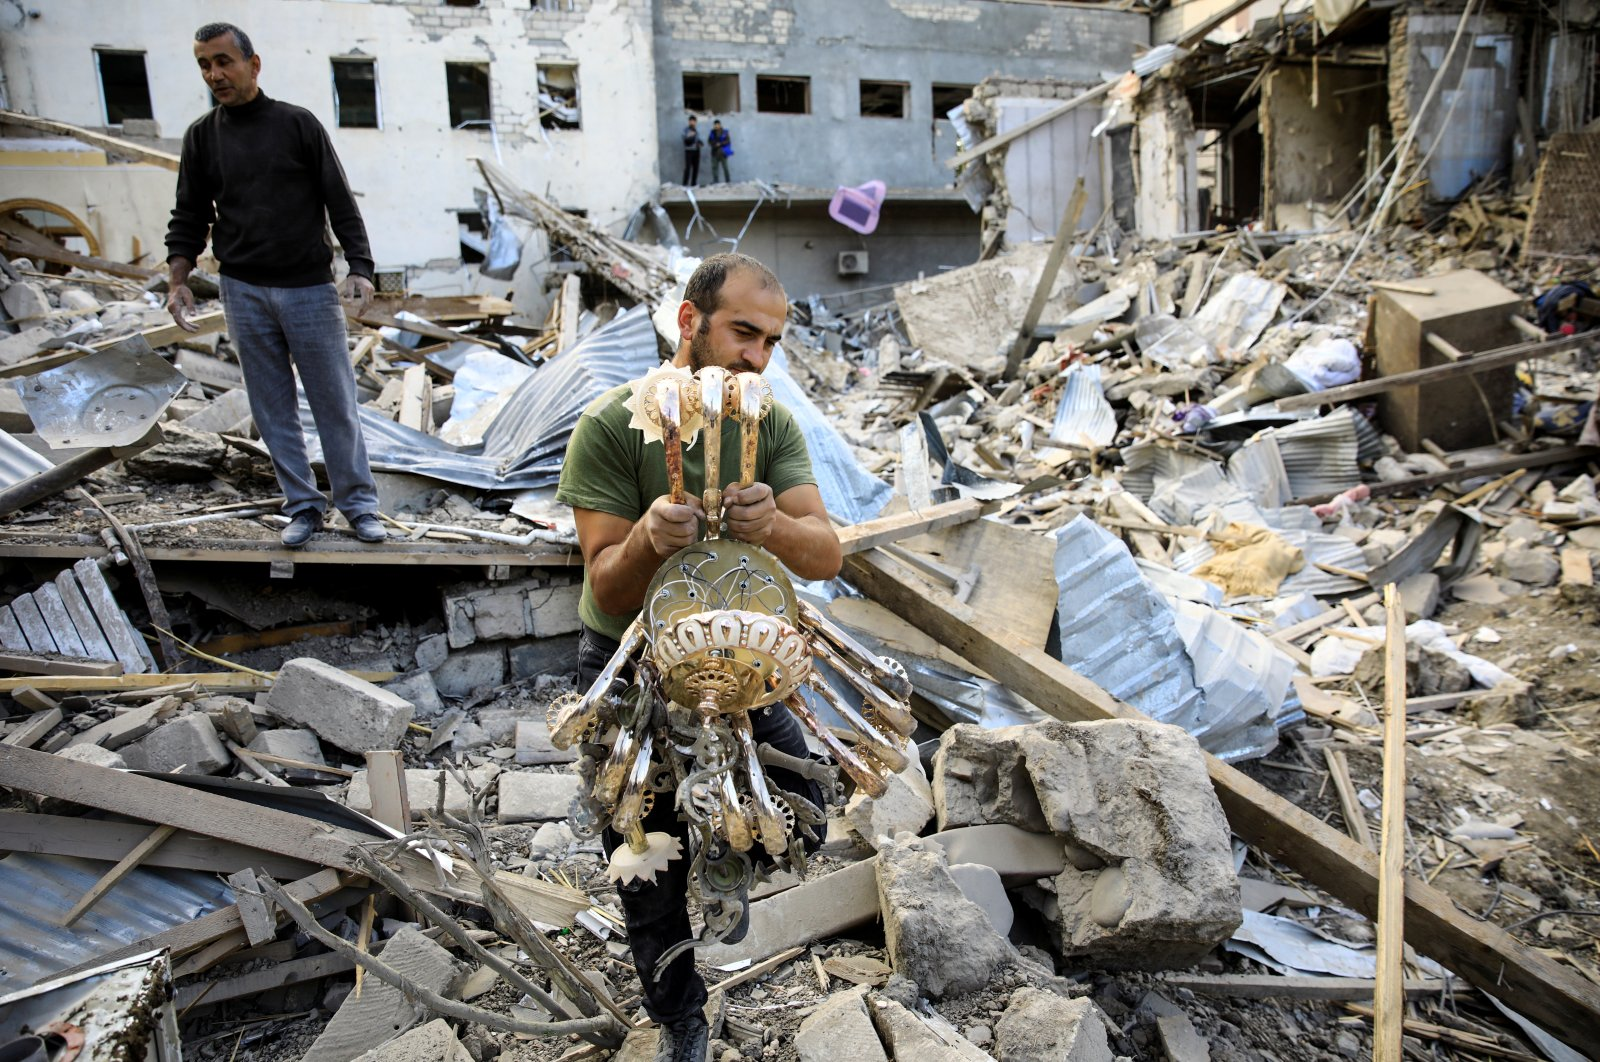 An Azerbaijani man carries a chandelier away from the ruins of a blast site hit by an Armenian rocket over the conflict in the occupied region of Nagorno-Karabakh in the city of Ganja, Azerbaijan, Oct. 11, 2020. (Reuters Photo)